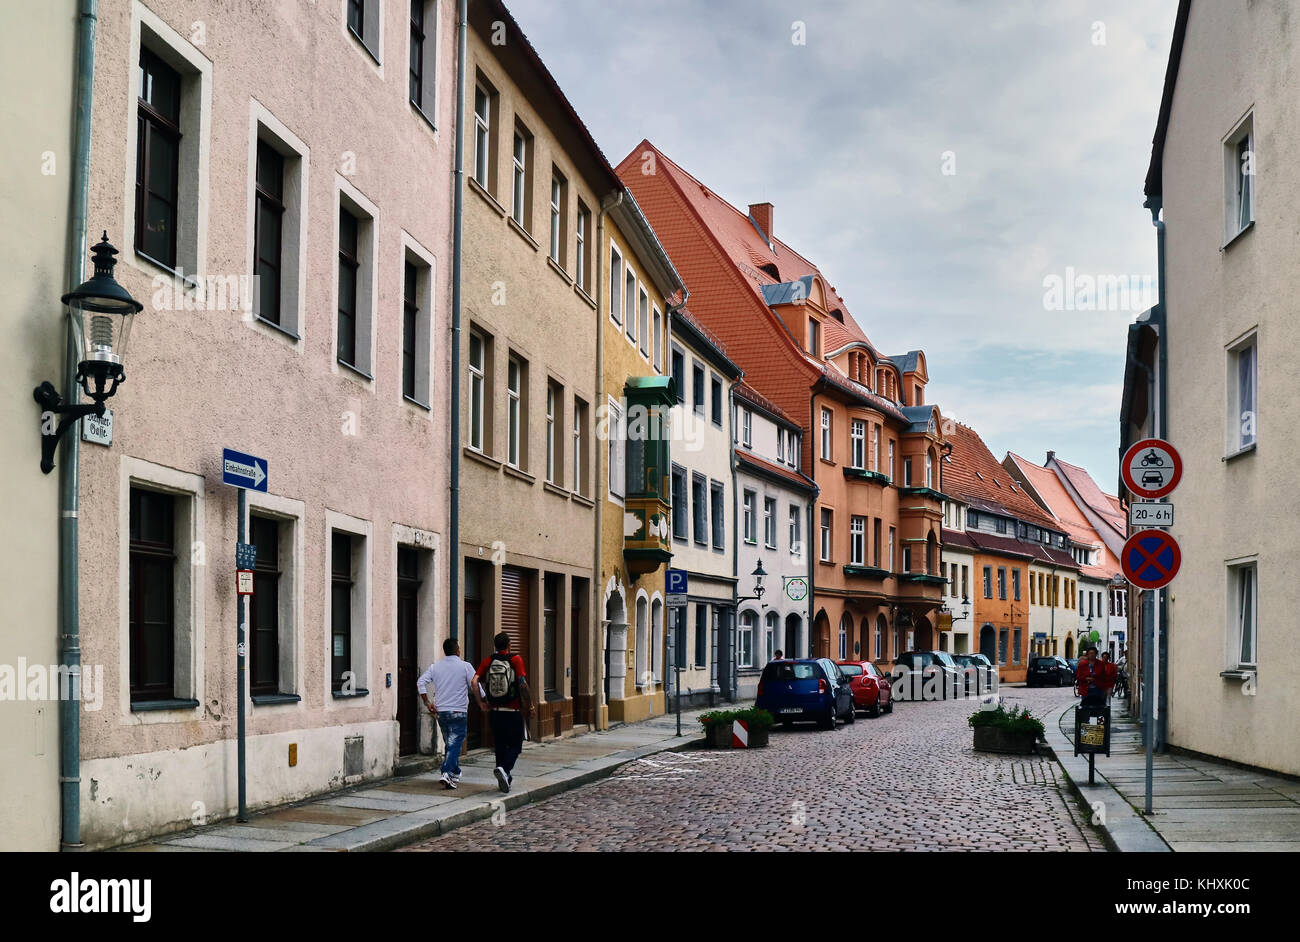 Europe, Germany, Saxony, Freiberg, city; Freiberg was for the Middle Ages most big city of Saxony. She is at the - Stock Image